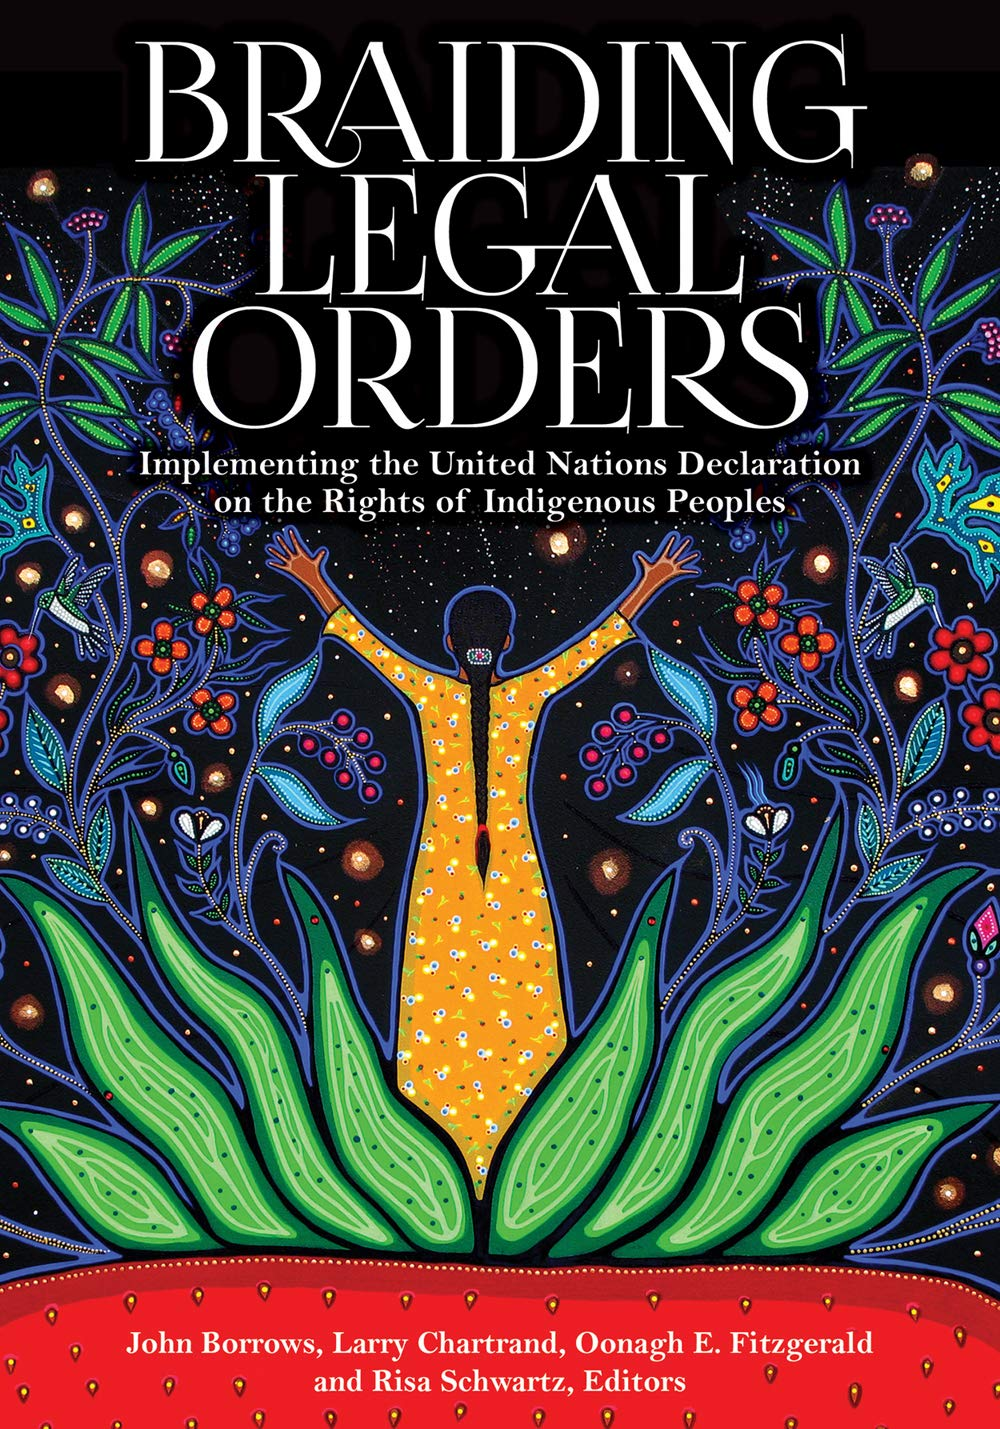 New Book - Braiding Legal Orders: Implementing the United Nations Declaration on the Rights of Indigenous